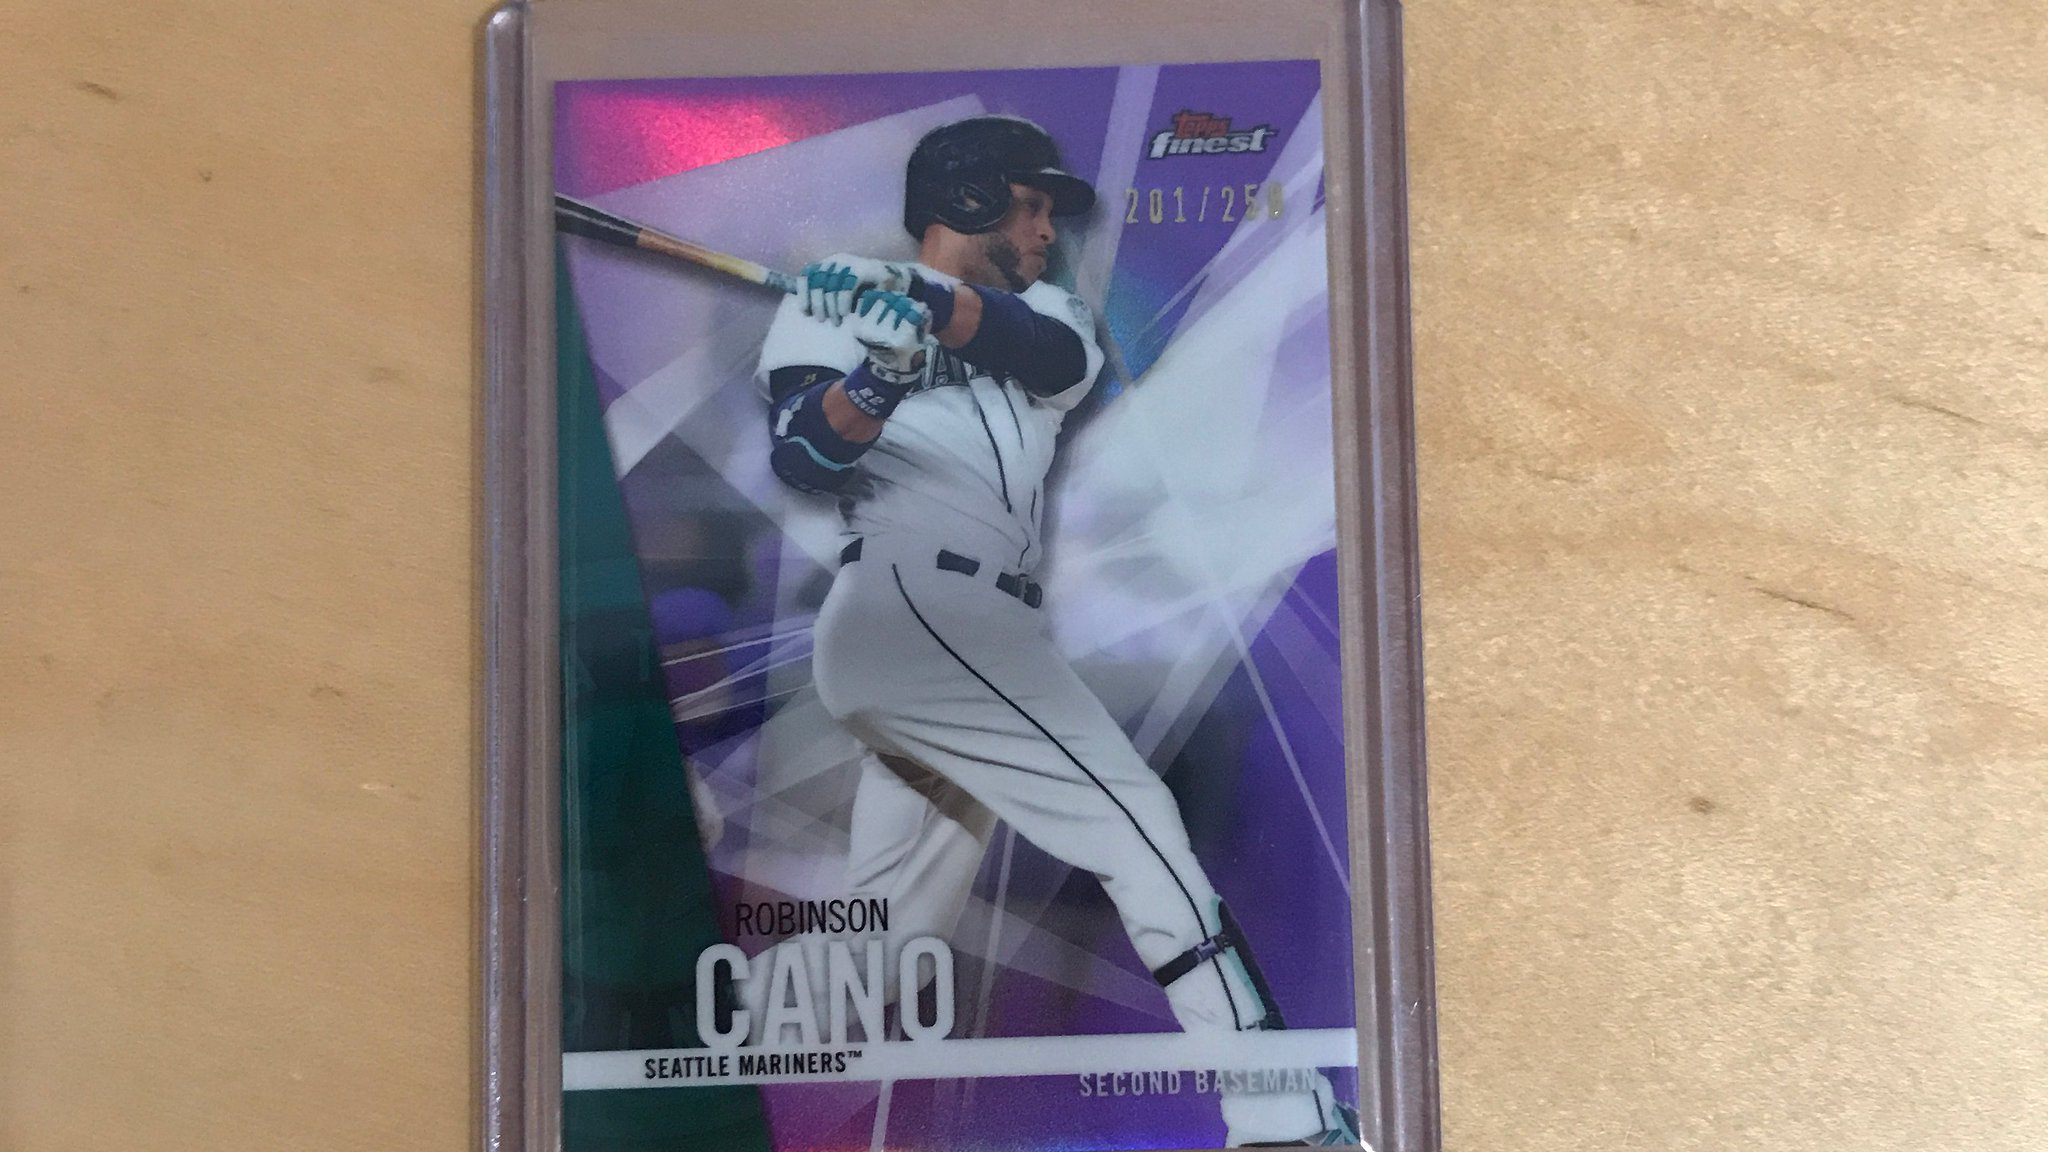 RT for a chance to win this baseball card of former World Baseball Classic MVP, @Robinsoncano! #MLBCards https://t.co/rdCIrqDh1t